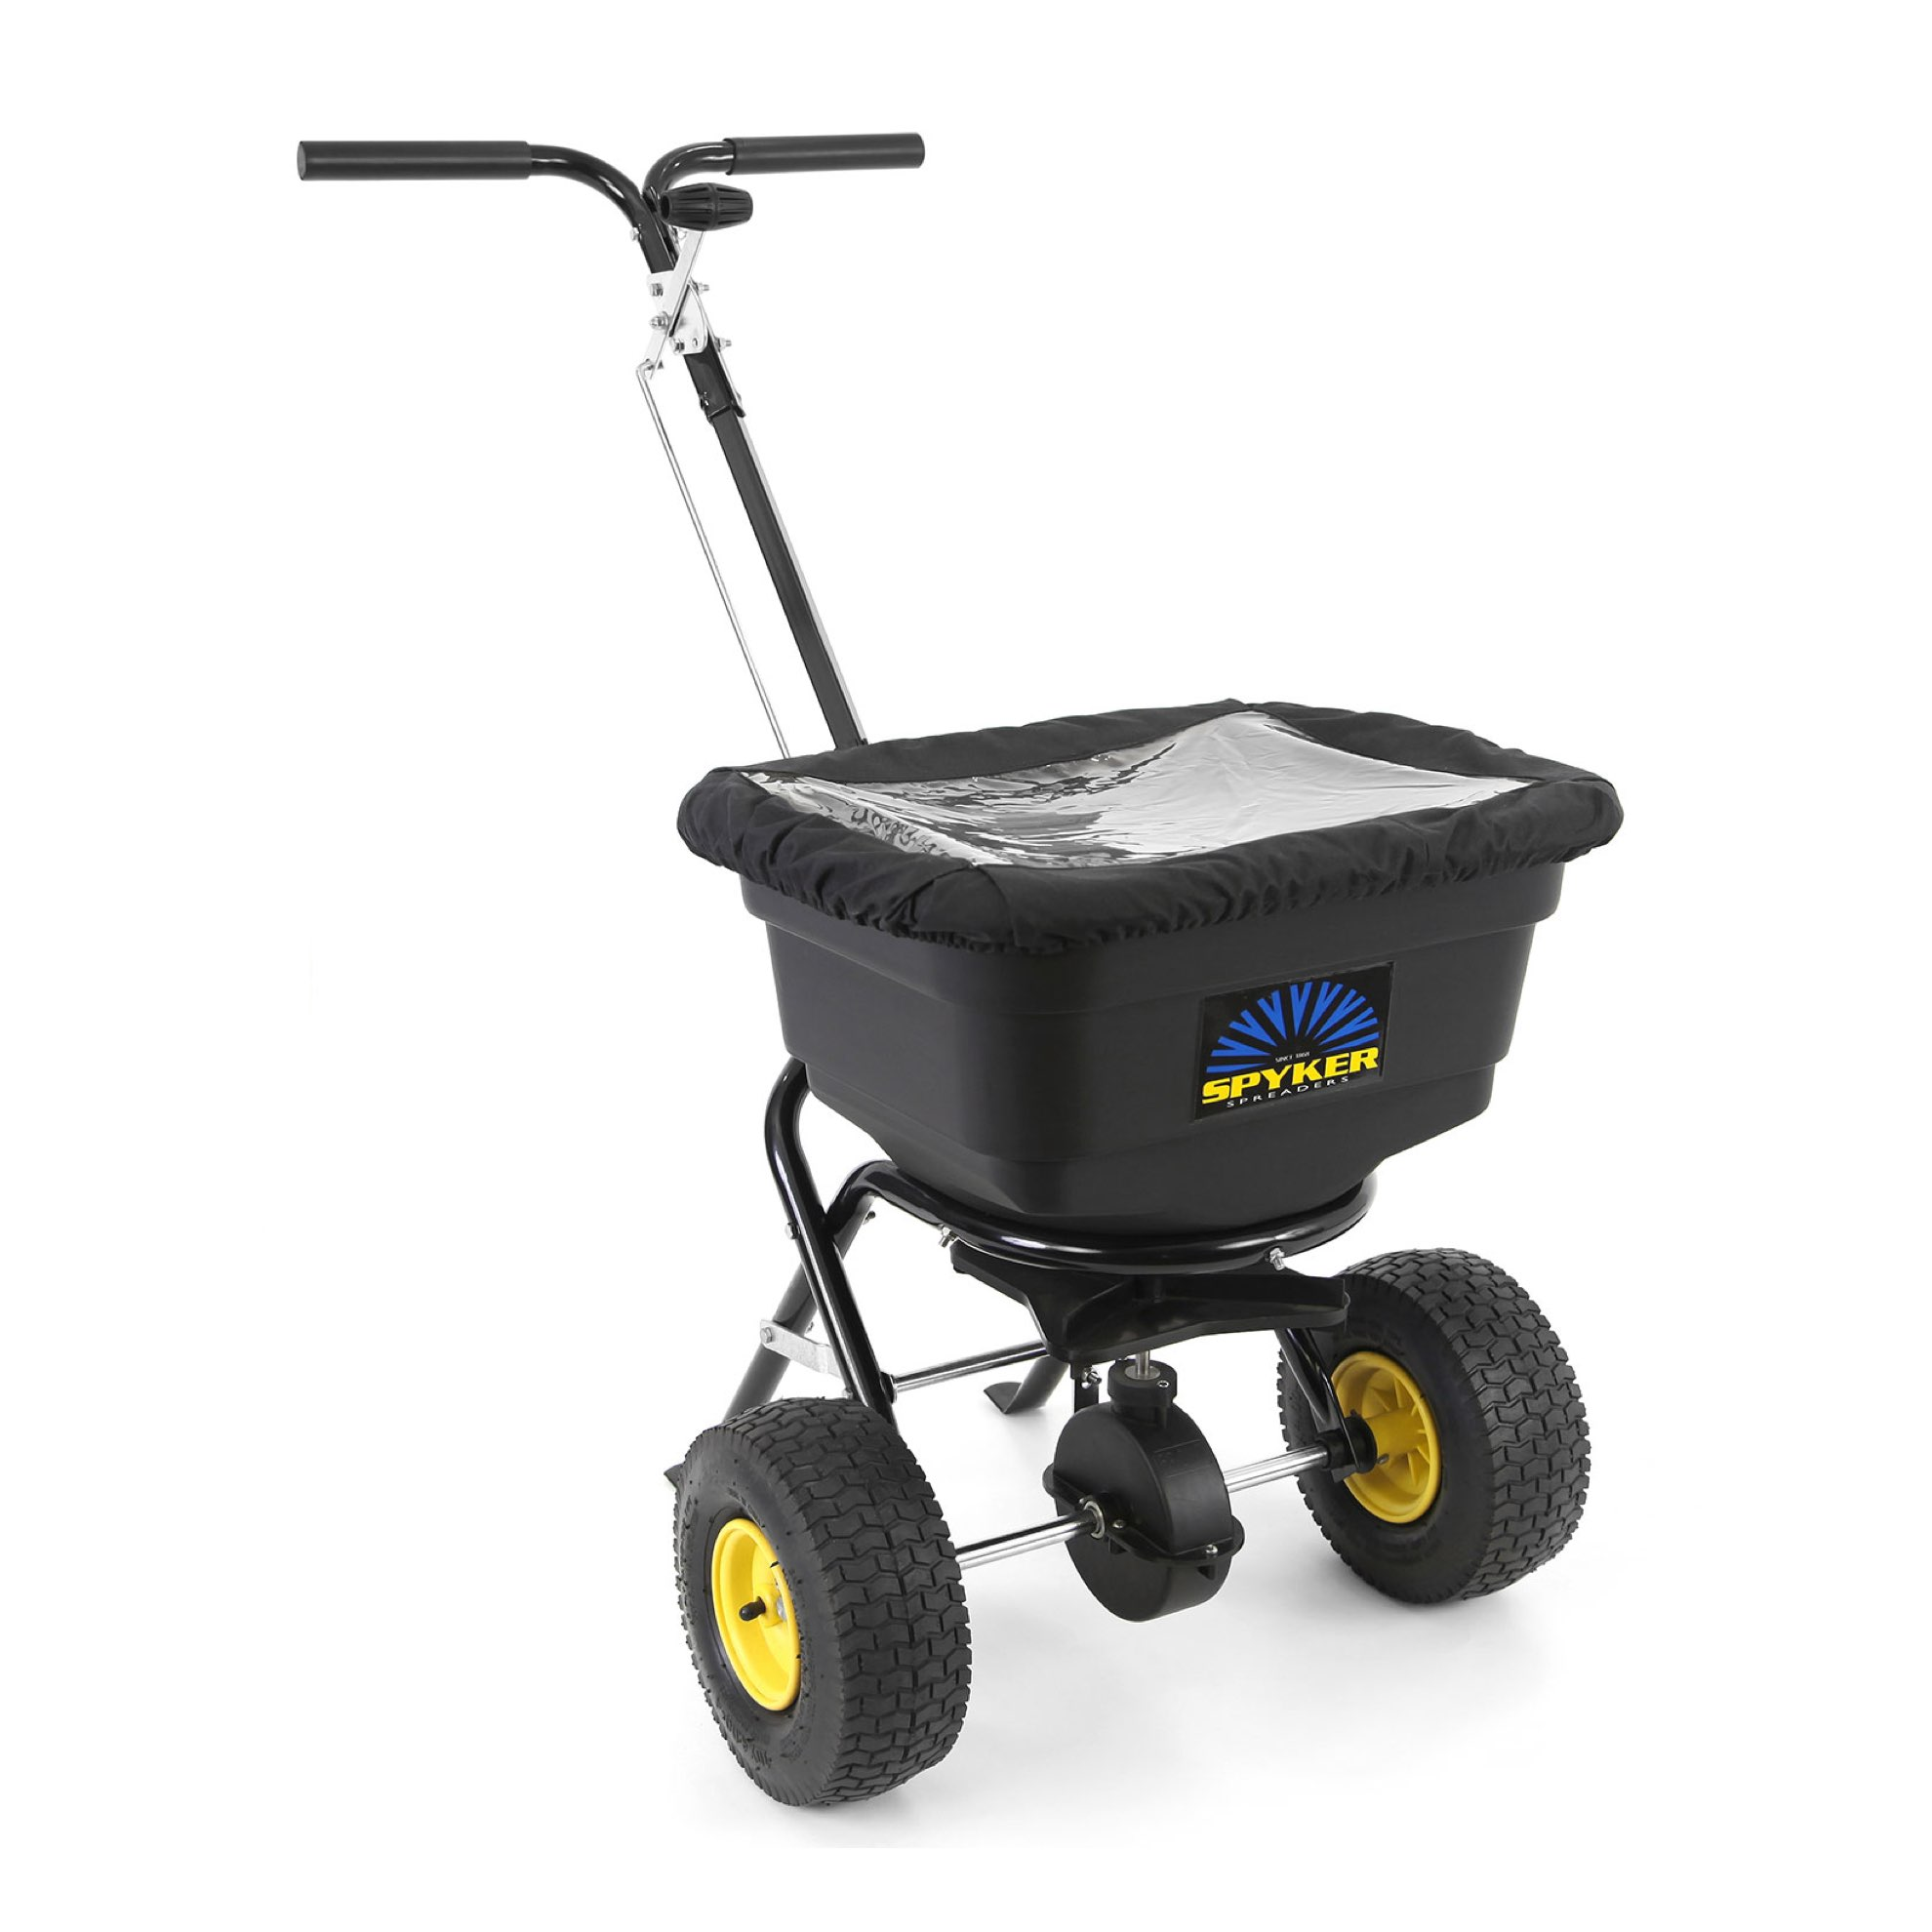 Spyker P20-5010 50lb Push Sport and Lawn Spreader